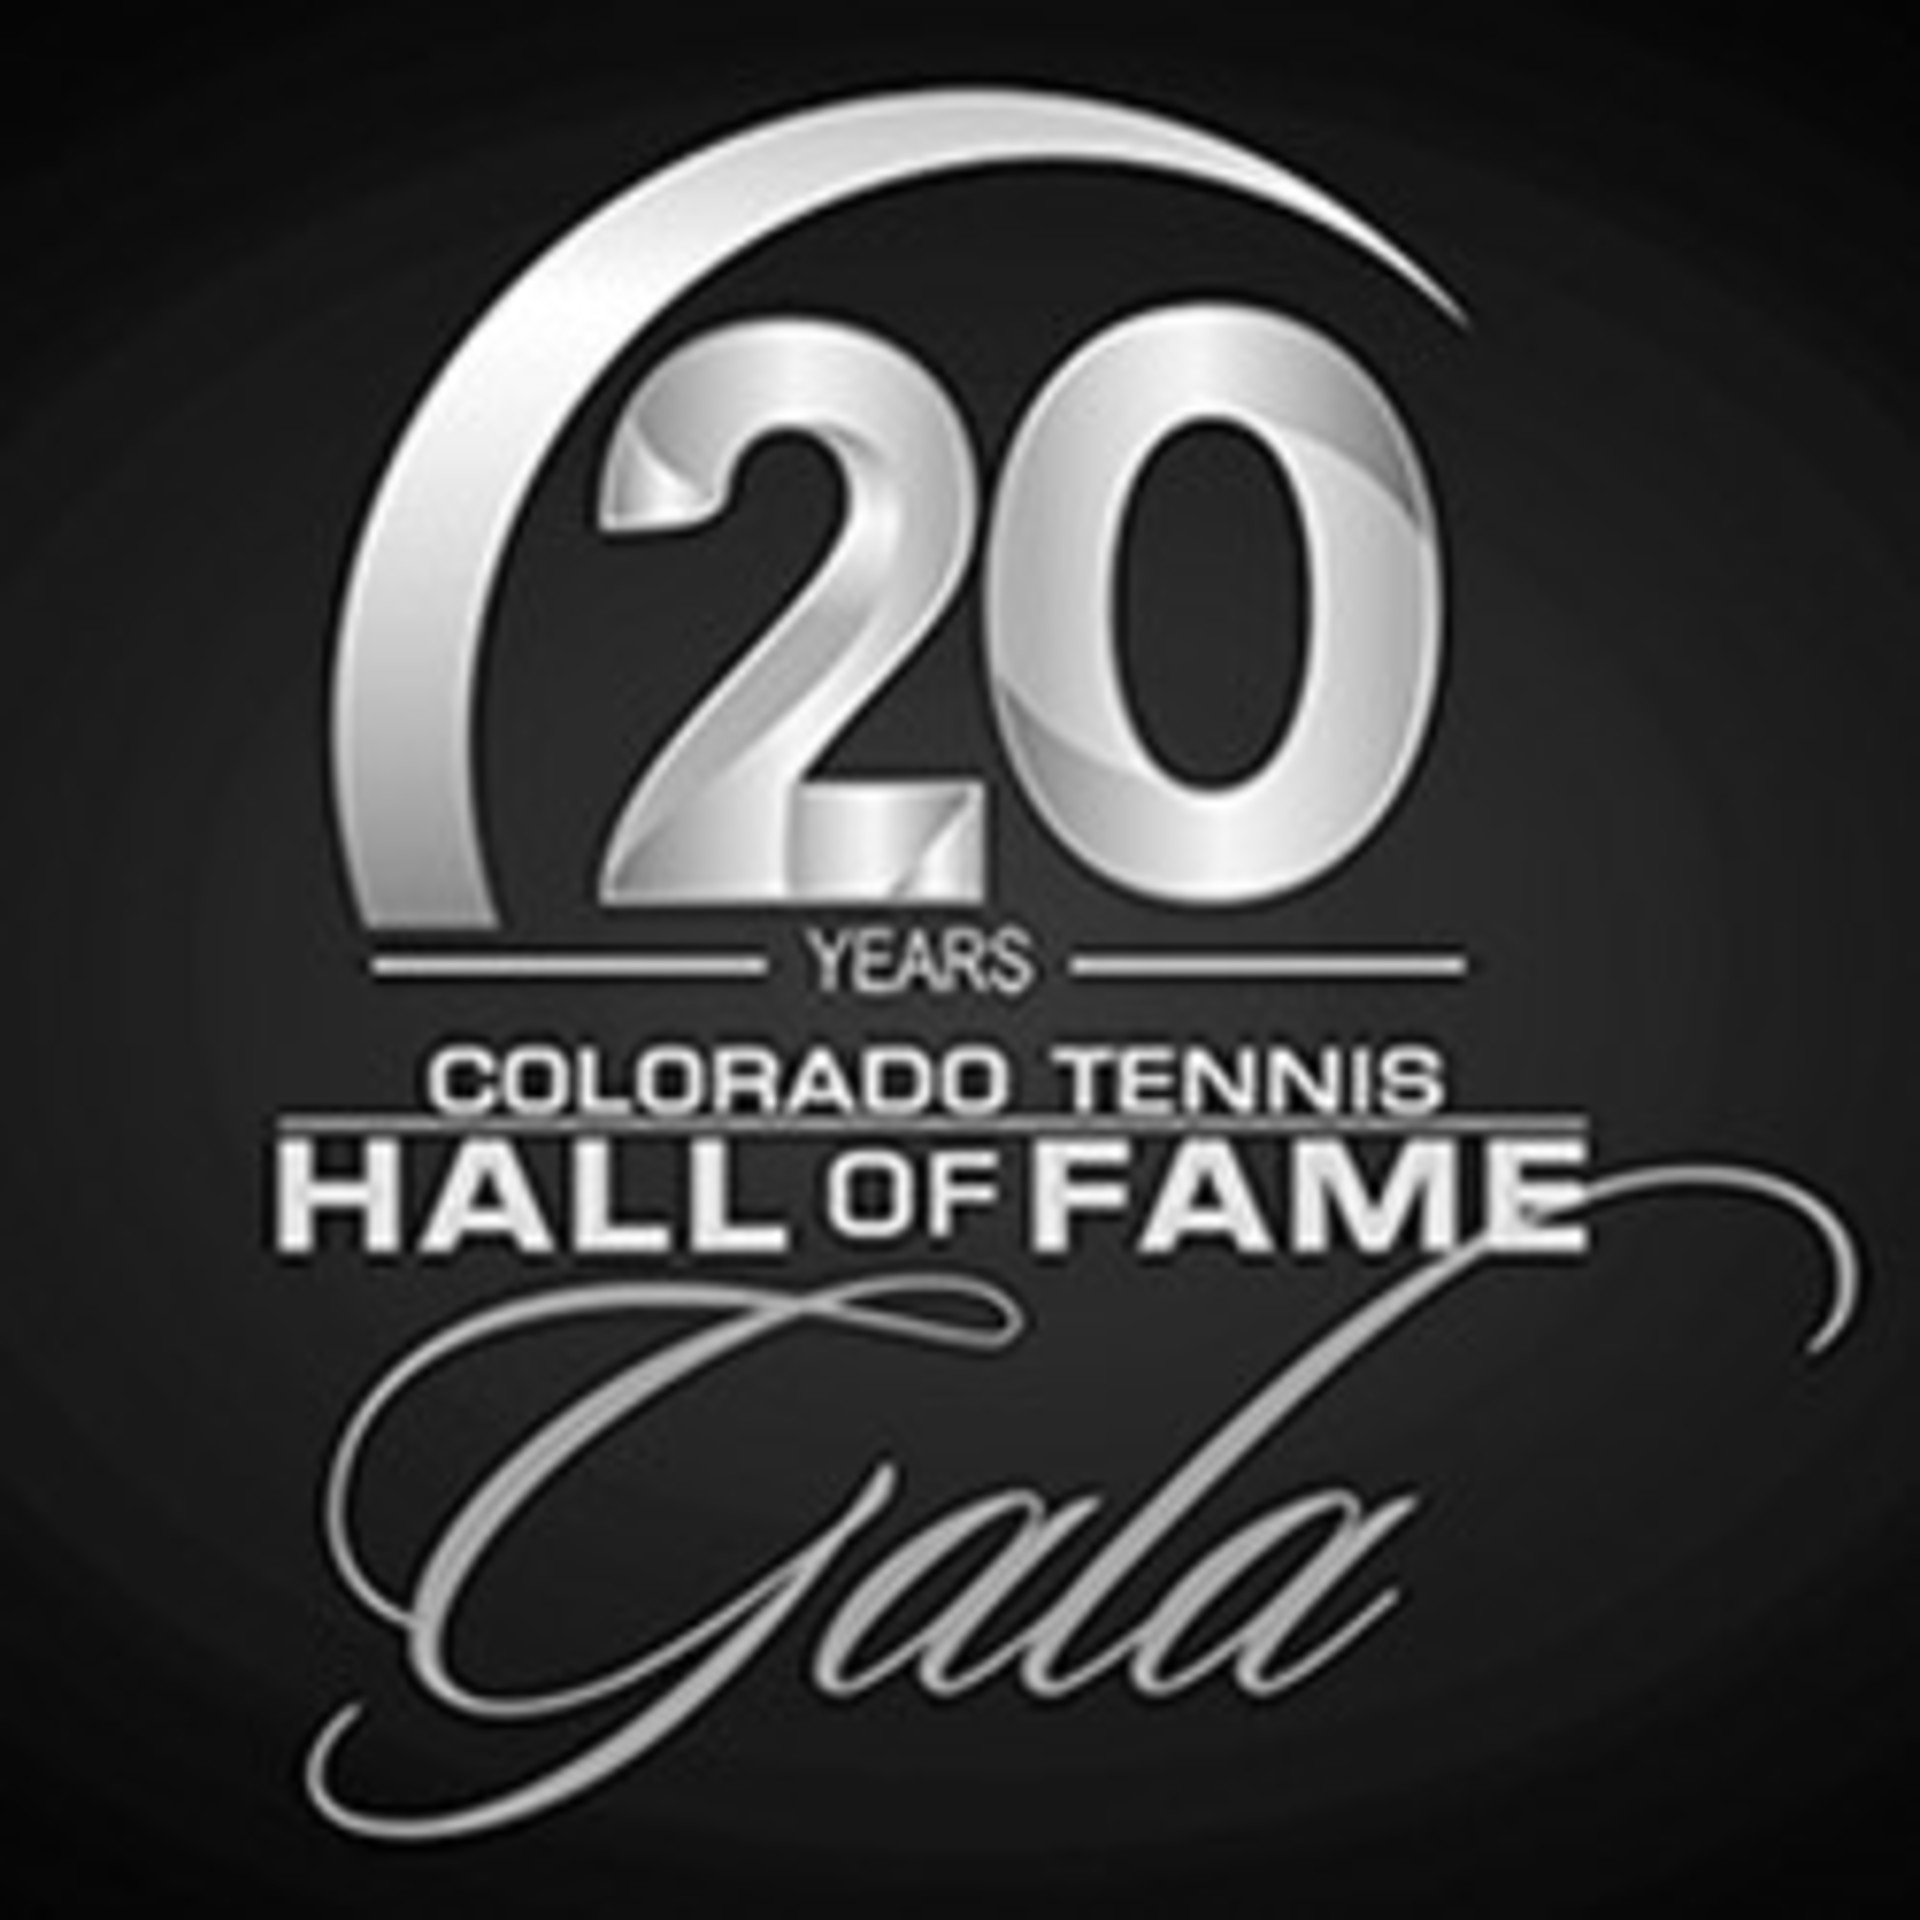 Colorado Tennis Hall of Fame Gala - 20th Anniversary